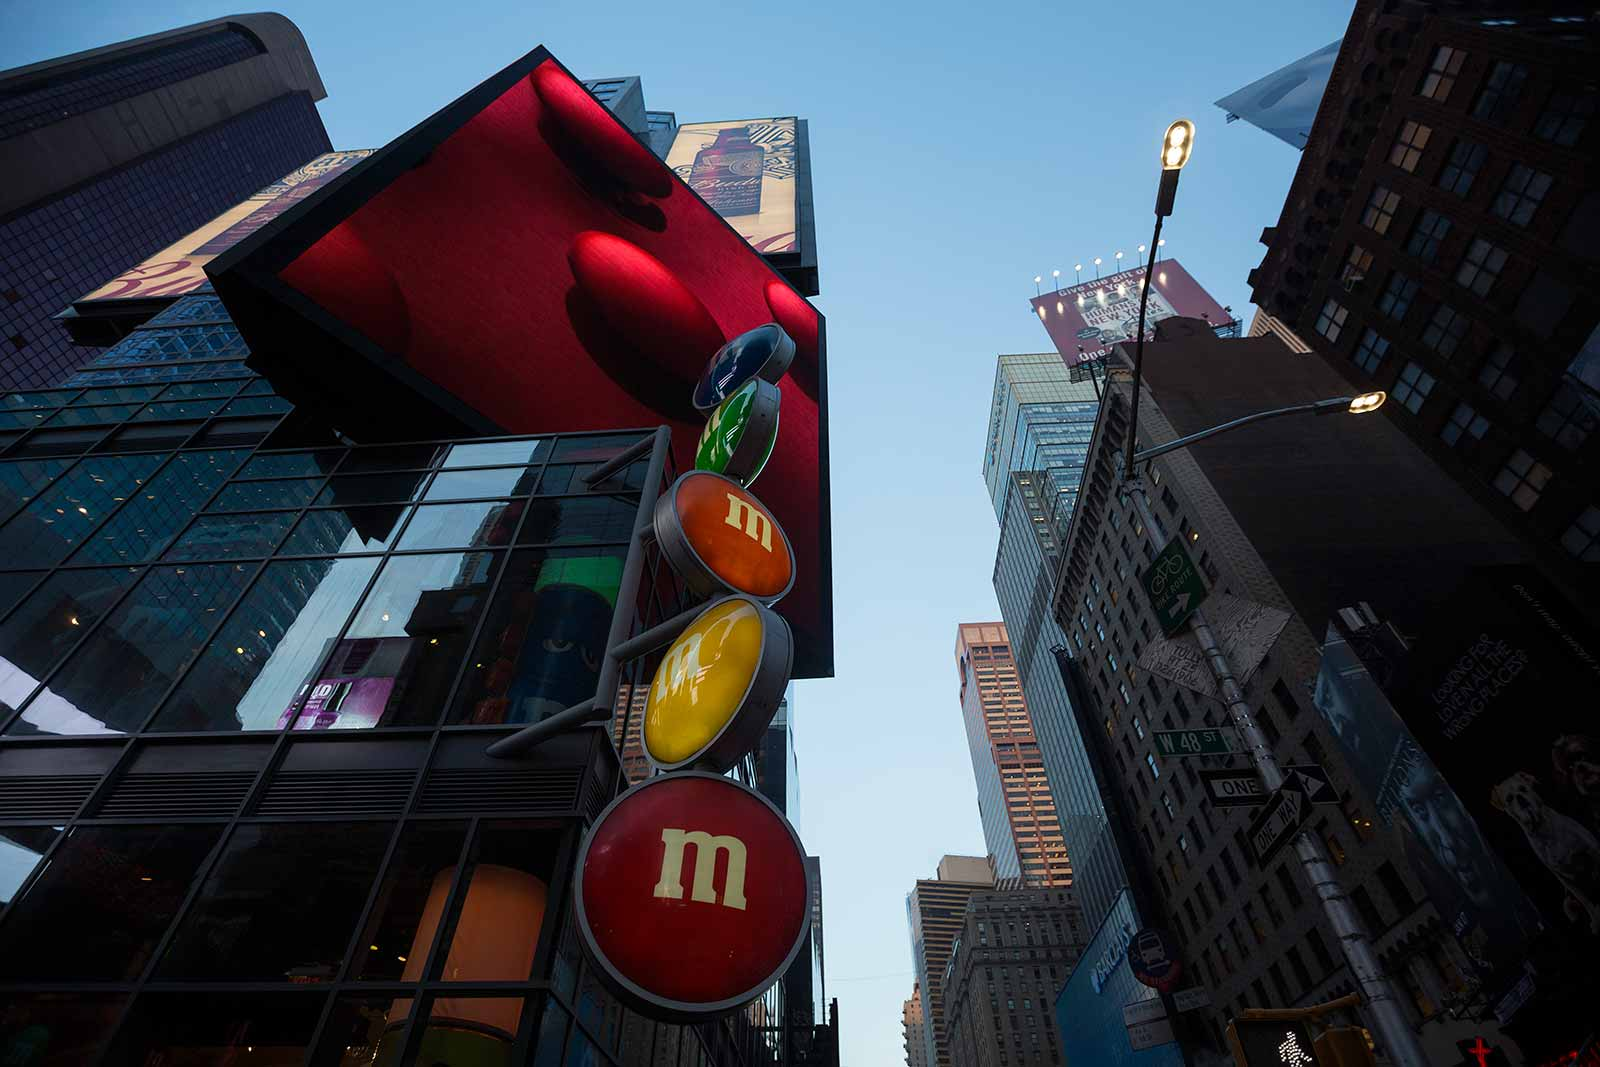 Times Square has risen to fame through movies and the media, which unfortunately made me expect more than what I got.